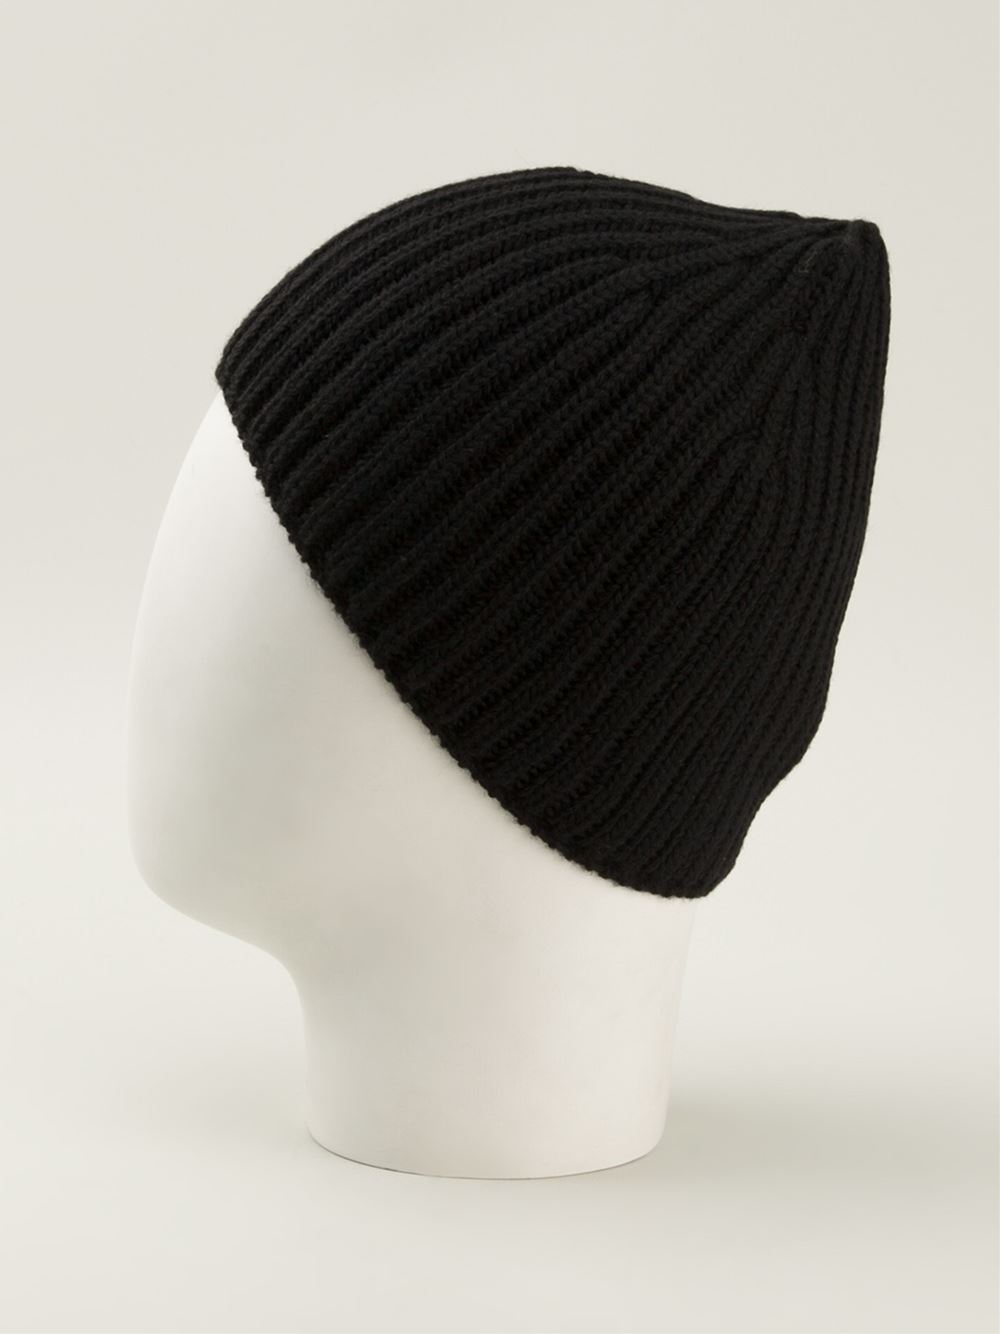 5a512d868b7 Lyst - Iceberg Ribbed Beanie Hat in Black for Men